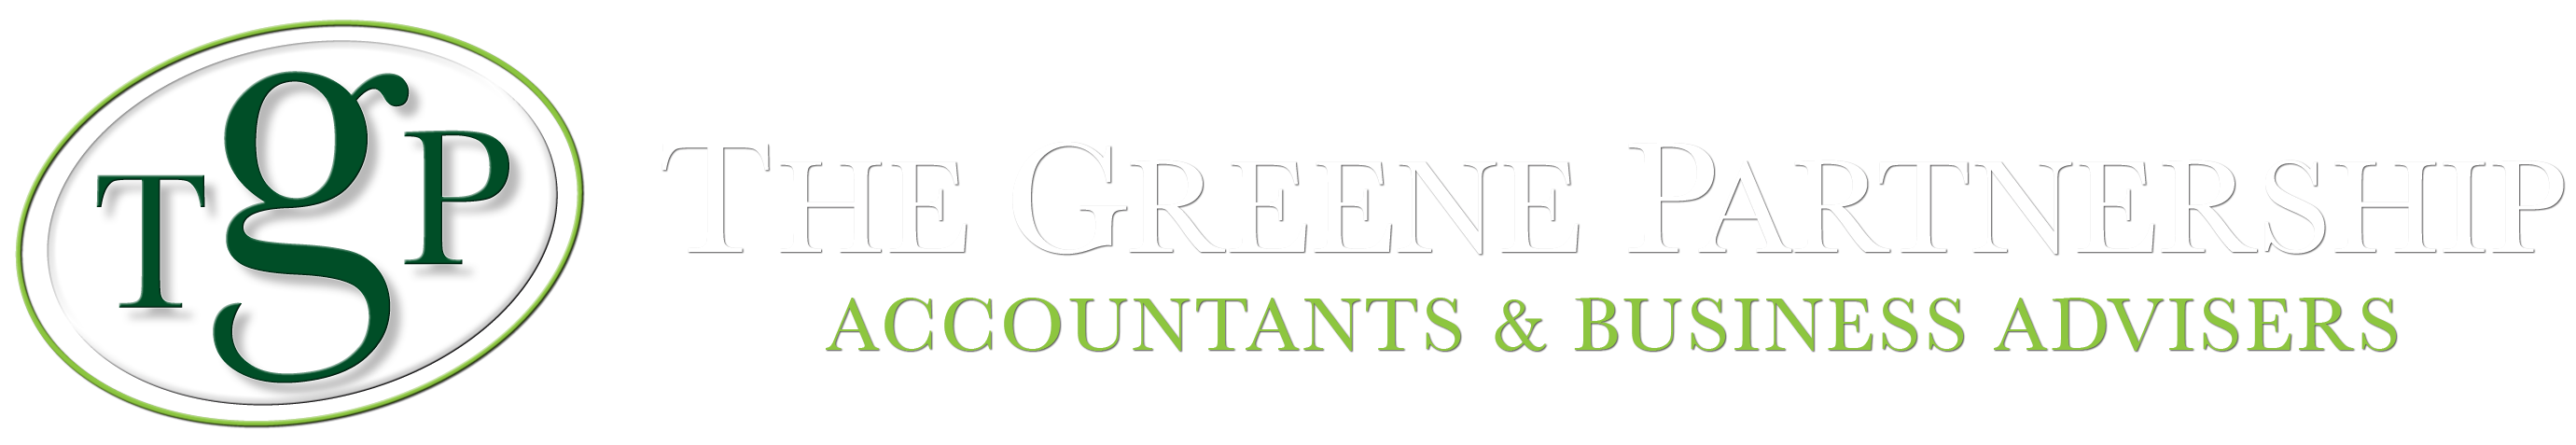 The Greene Partnership Business Advisers & Accountants